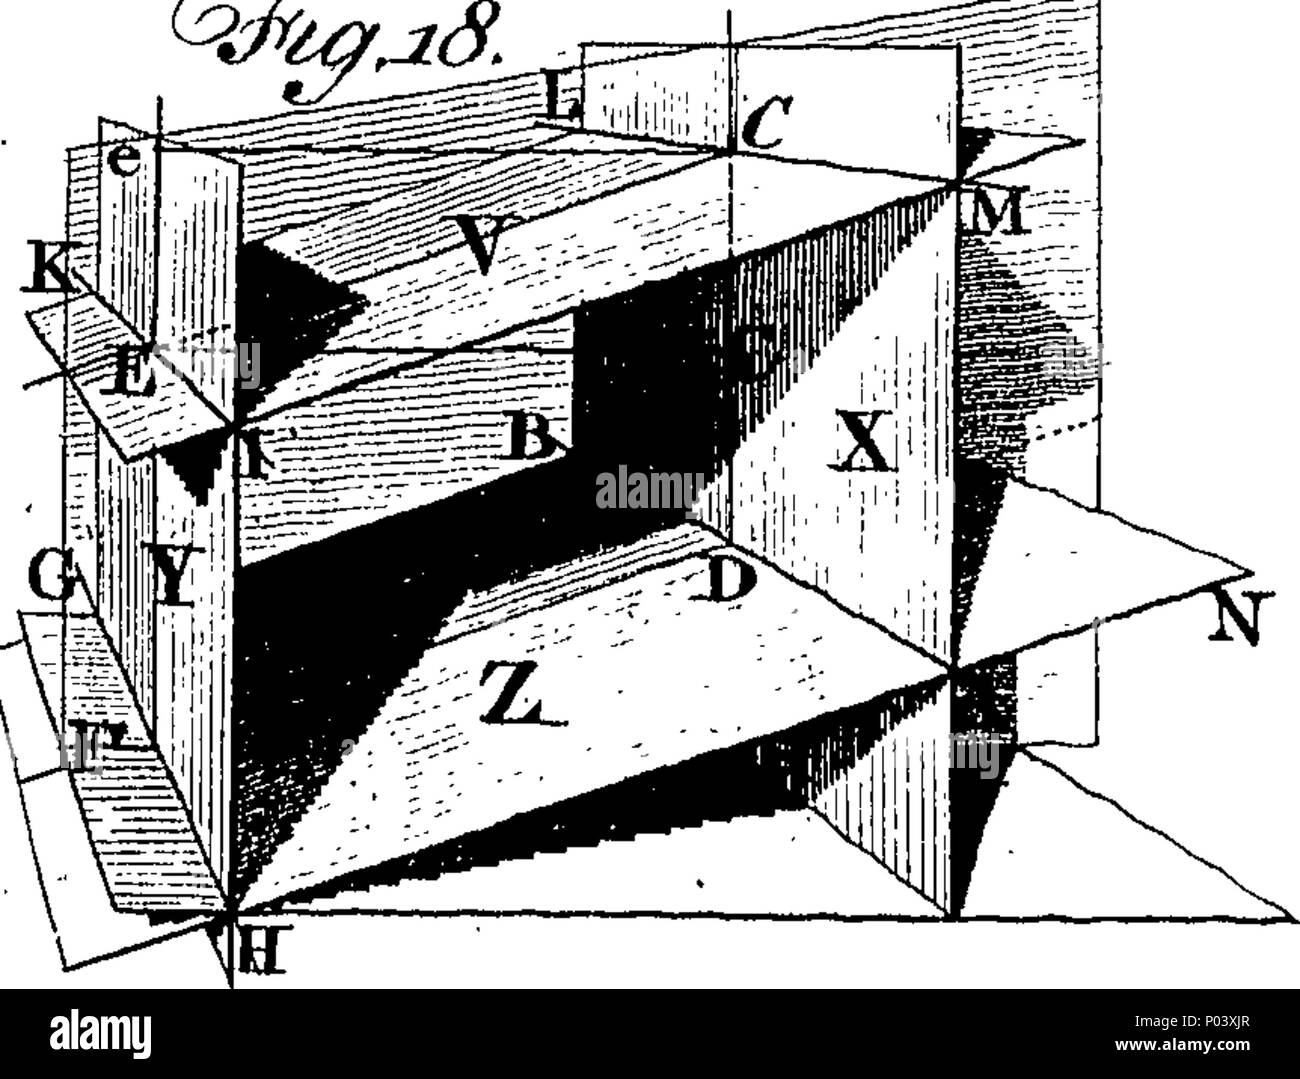 . English: Fleuron from book: A compleat treatise on perspective, in theory and practice; on the principles of Dr. Brook Taylor. Made Clear, by Various Moveable Schemes, and Diagrams, in the Most Intelligent Manner. In four books. Embellished with an Elegant Frontispiece and Forty-Eight Plates. Containing Diagrams, Views, and Original Designs, in Architecture, &c. By the Author; Elegantly Engraved. Book I. Treats on Optics and Vision, a necessary Introduction to the Theory of Perspective; and contains some Objections to the received Opinions of Light and Colour; Reflection, &c. Book II. Contai - Stock Image